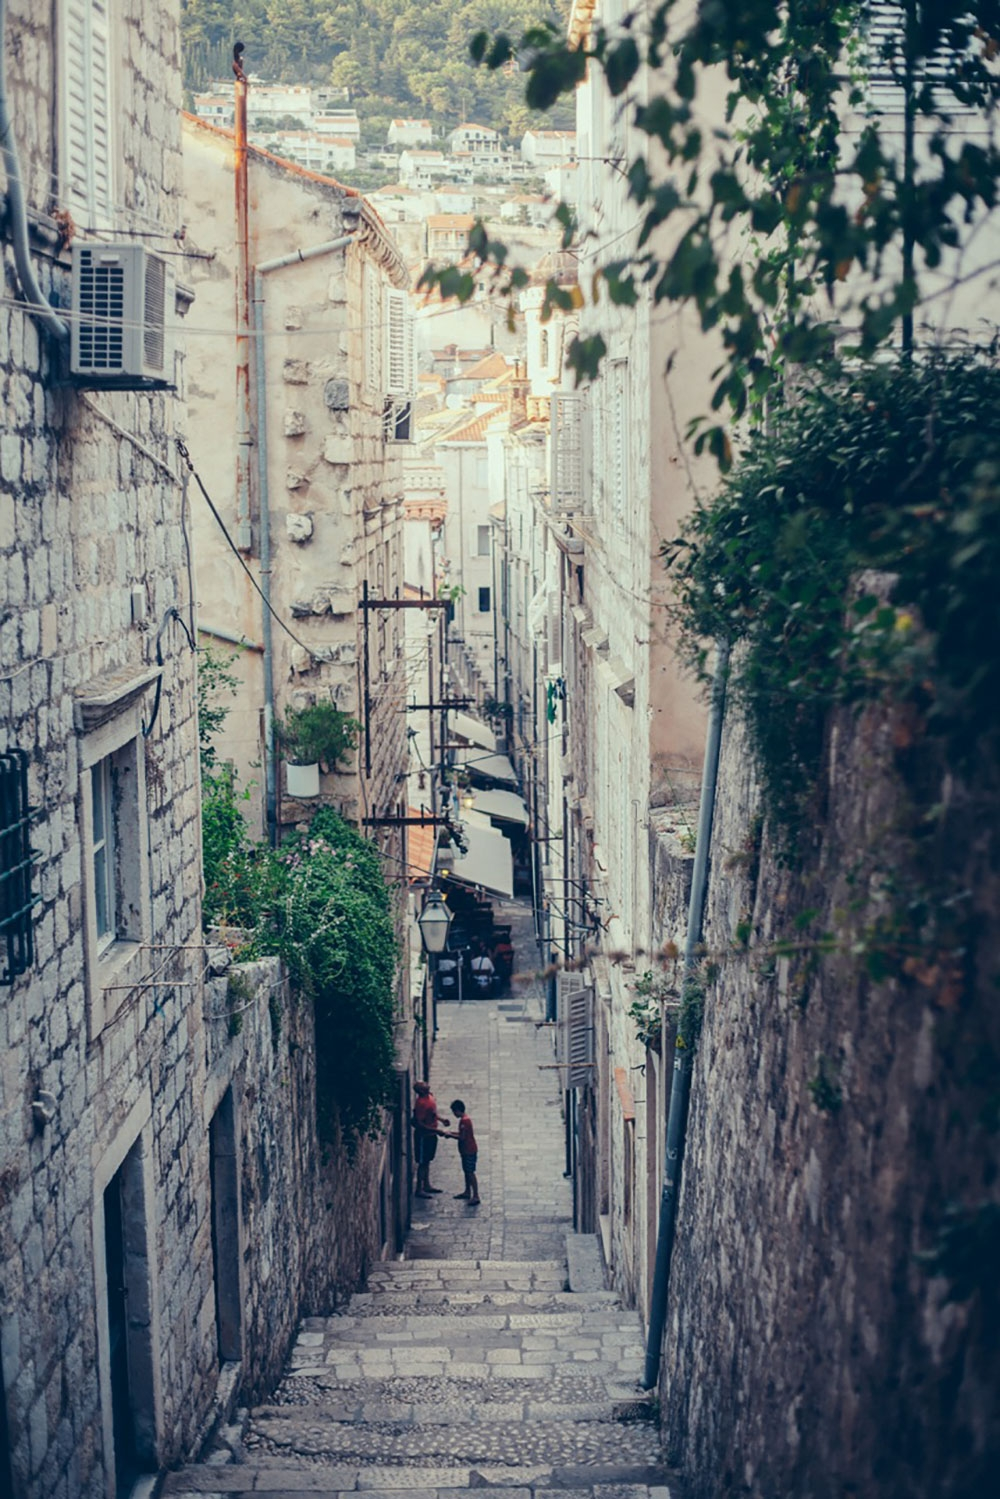 Exploring the stone streets of Dubrovnik